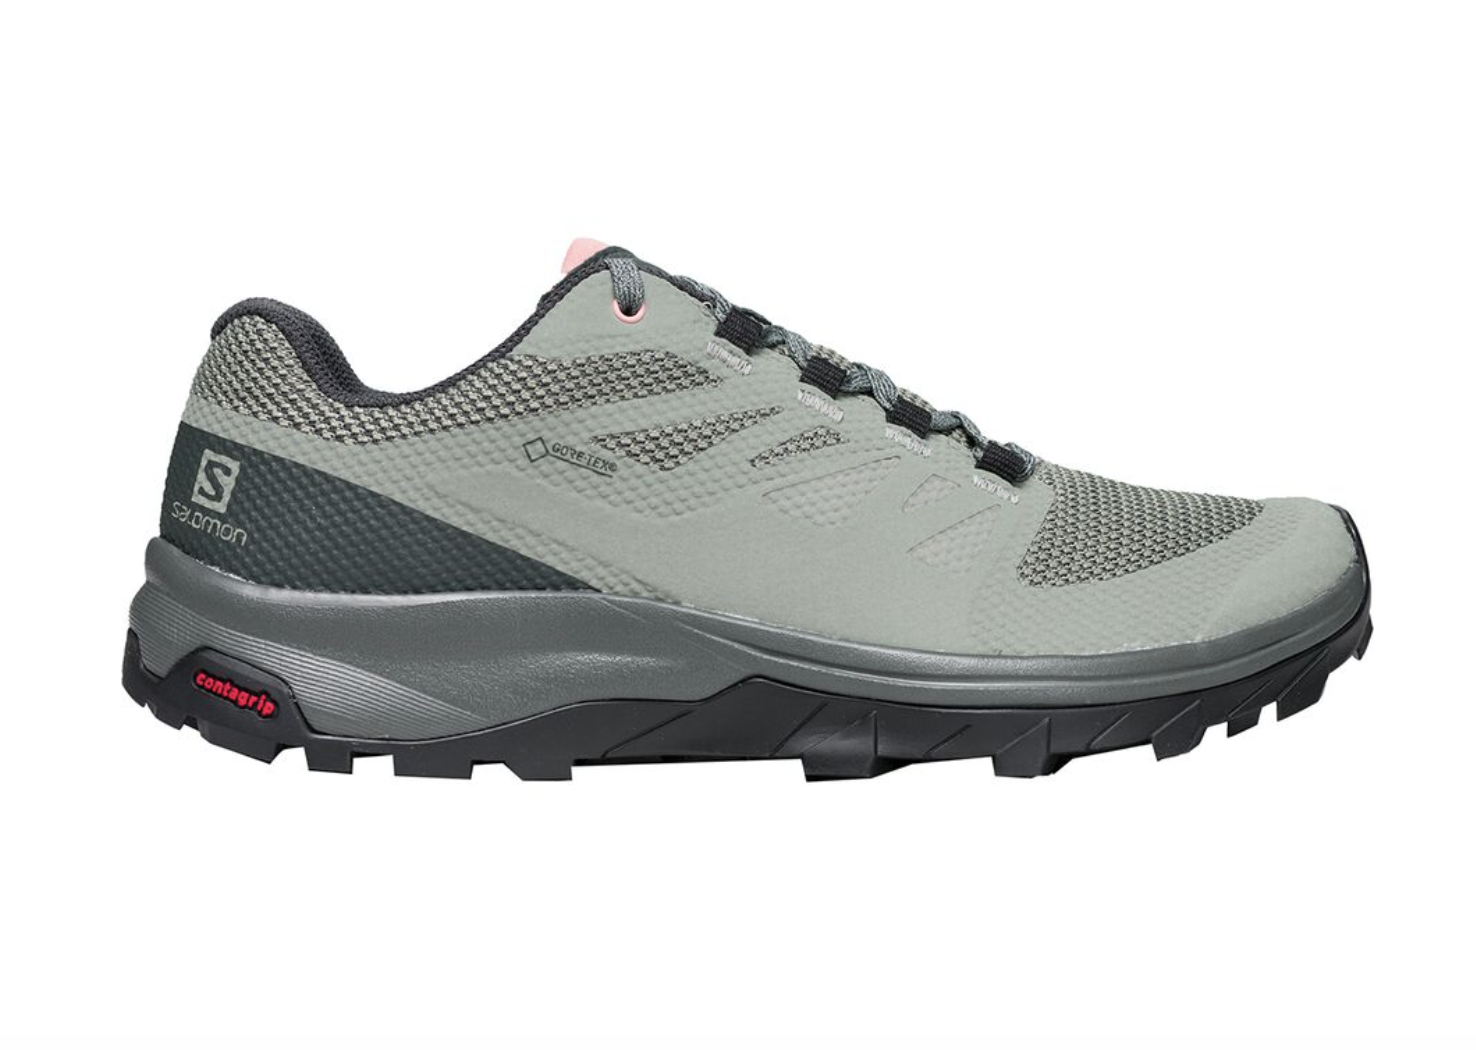 Backcountry: Up to 45% off Women's hiking footwear